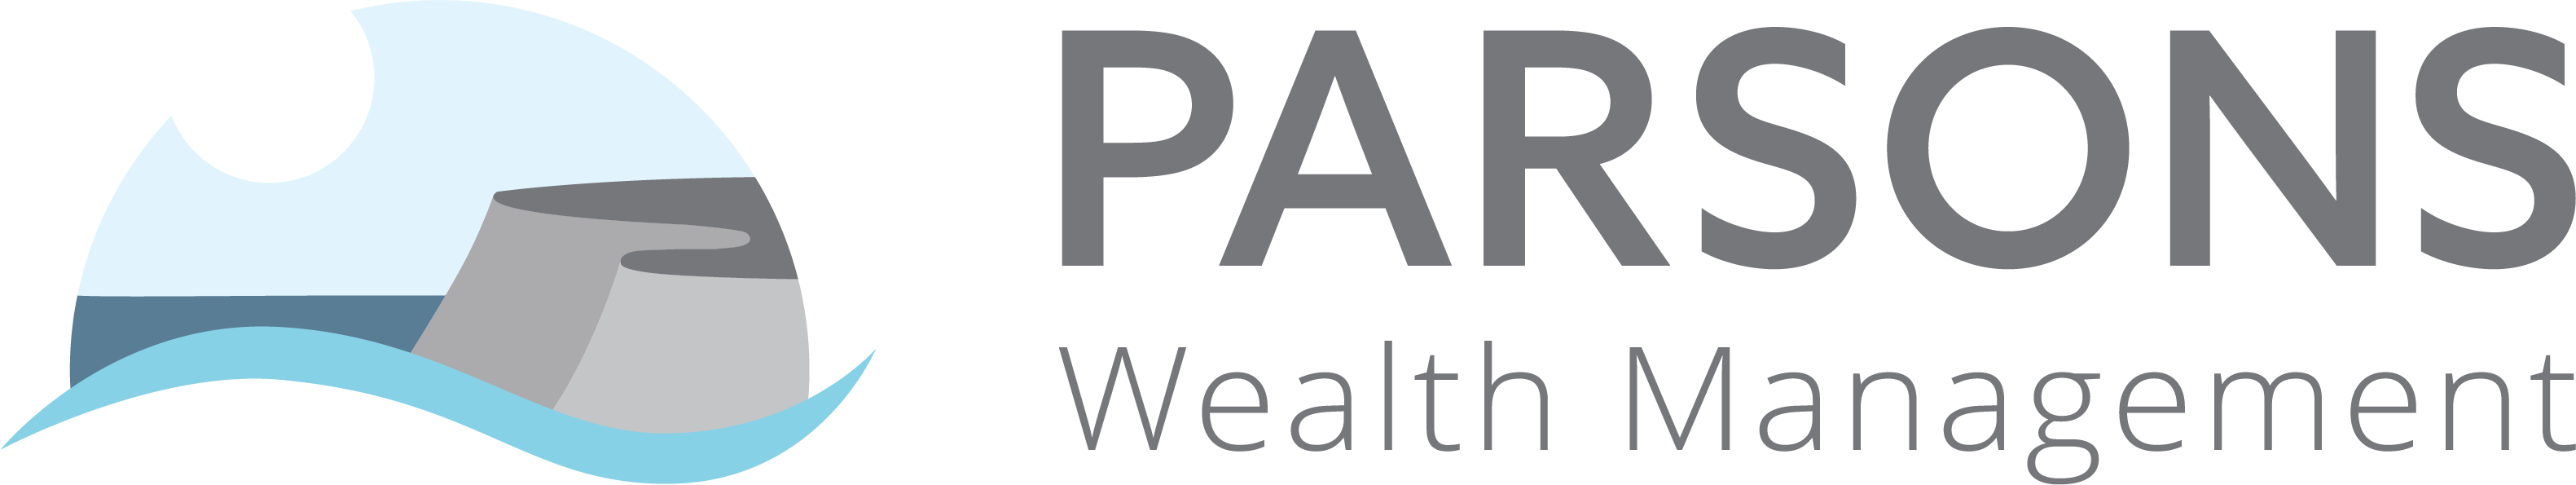 Parsons Wealth Management